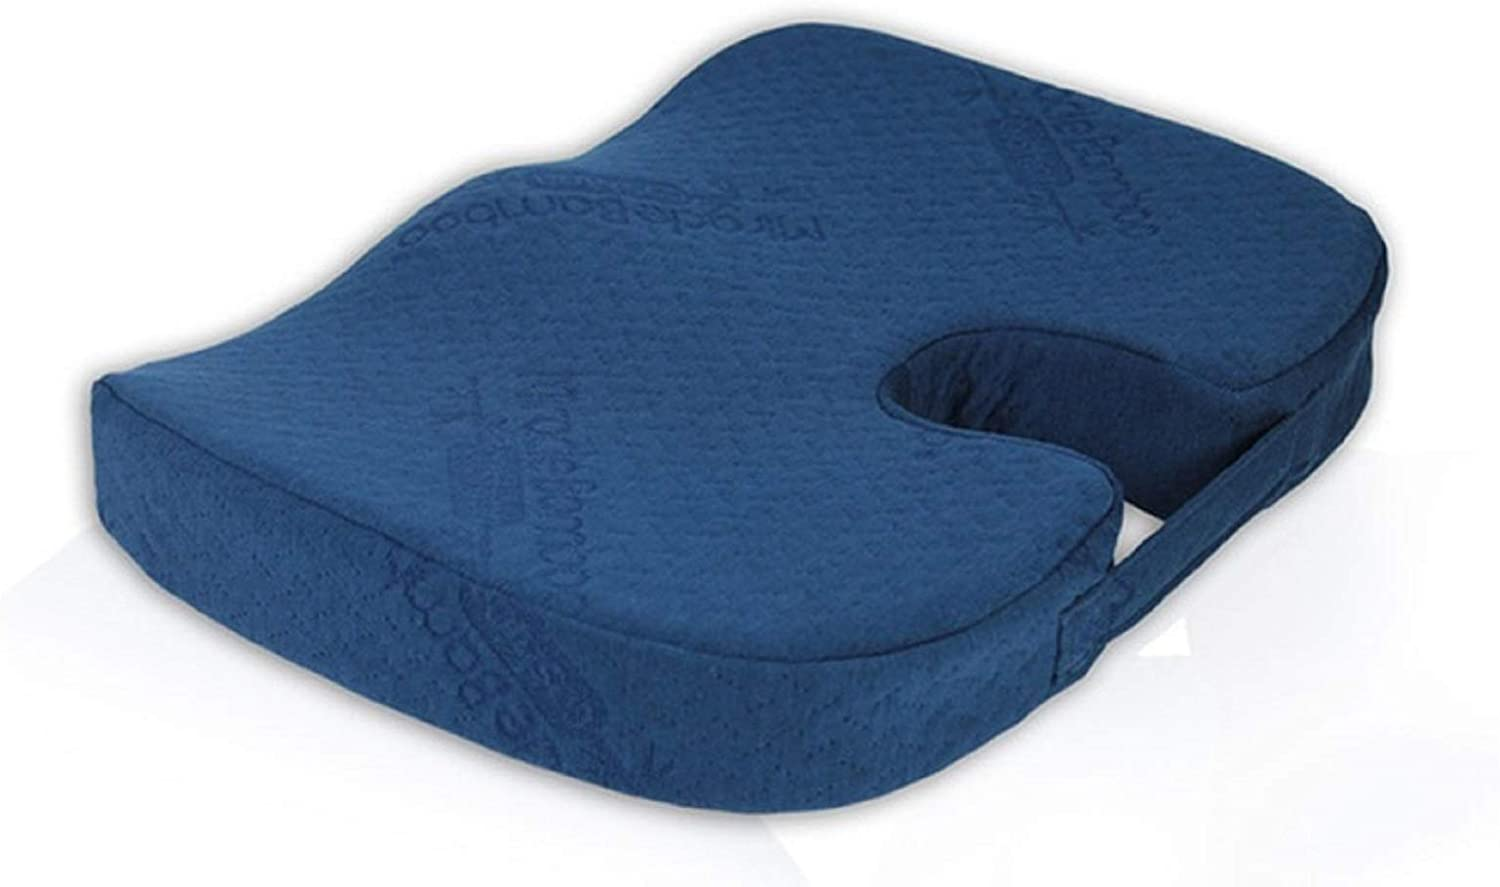 As Seen On TV Miracle Bamboo Cushion Comes in Packing Gray, 2